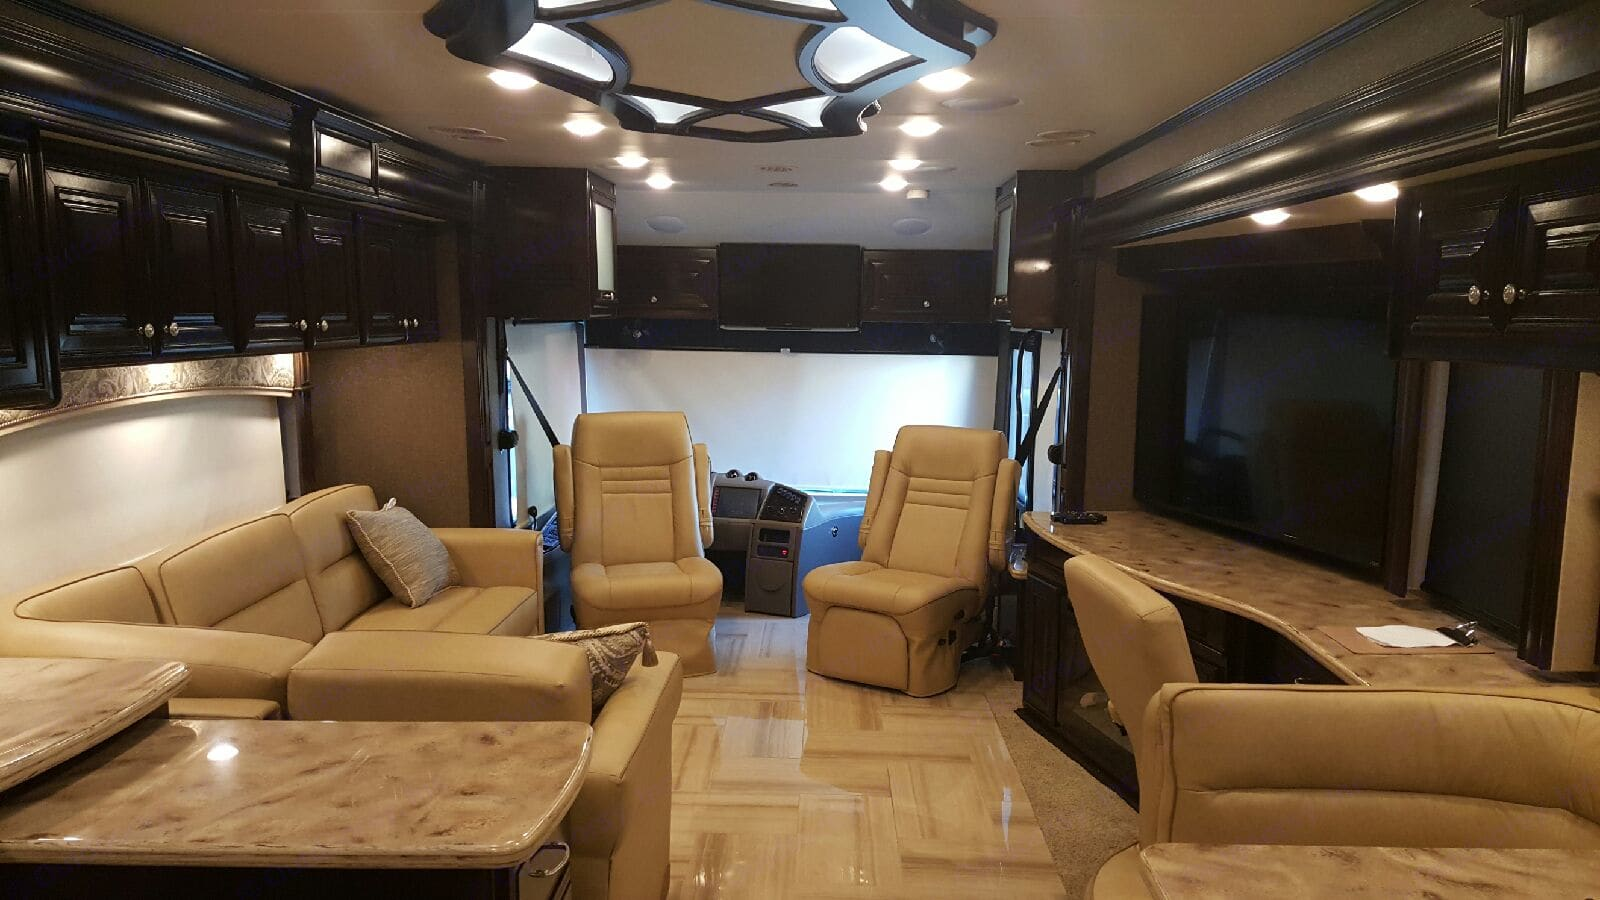 Front lounge area, 32 inch screen TV over driver area, 60 inch screen TV in lounge area with fireplace, work station desk area.. Thor Motor Coach Tuscany 2016